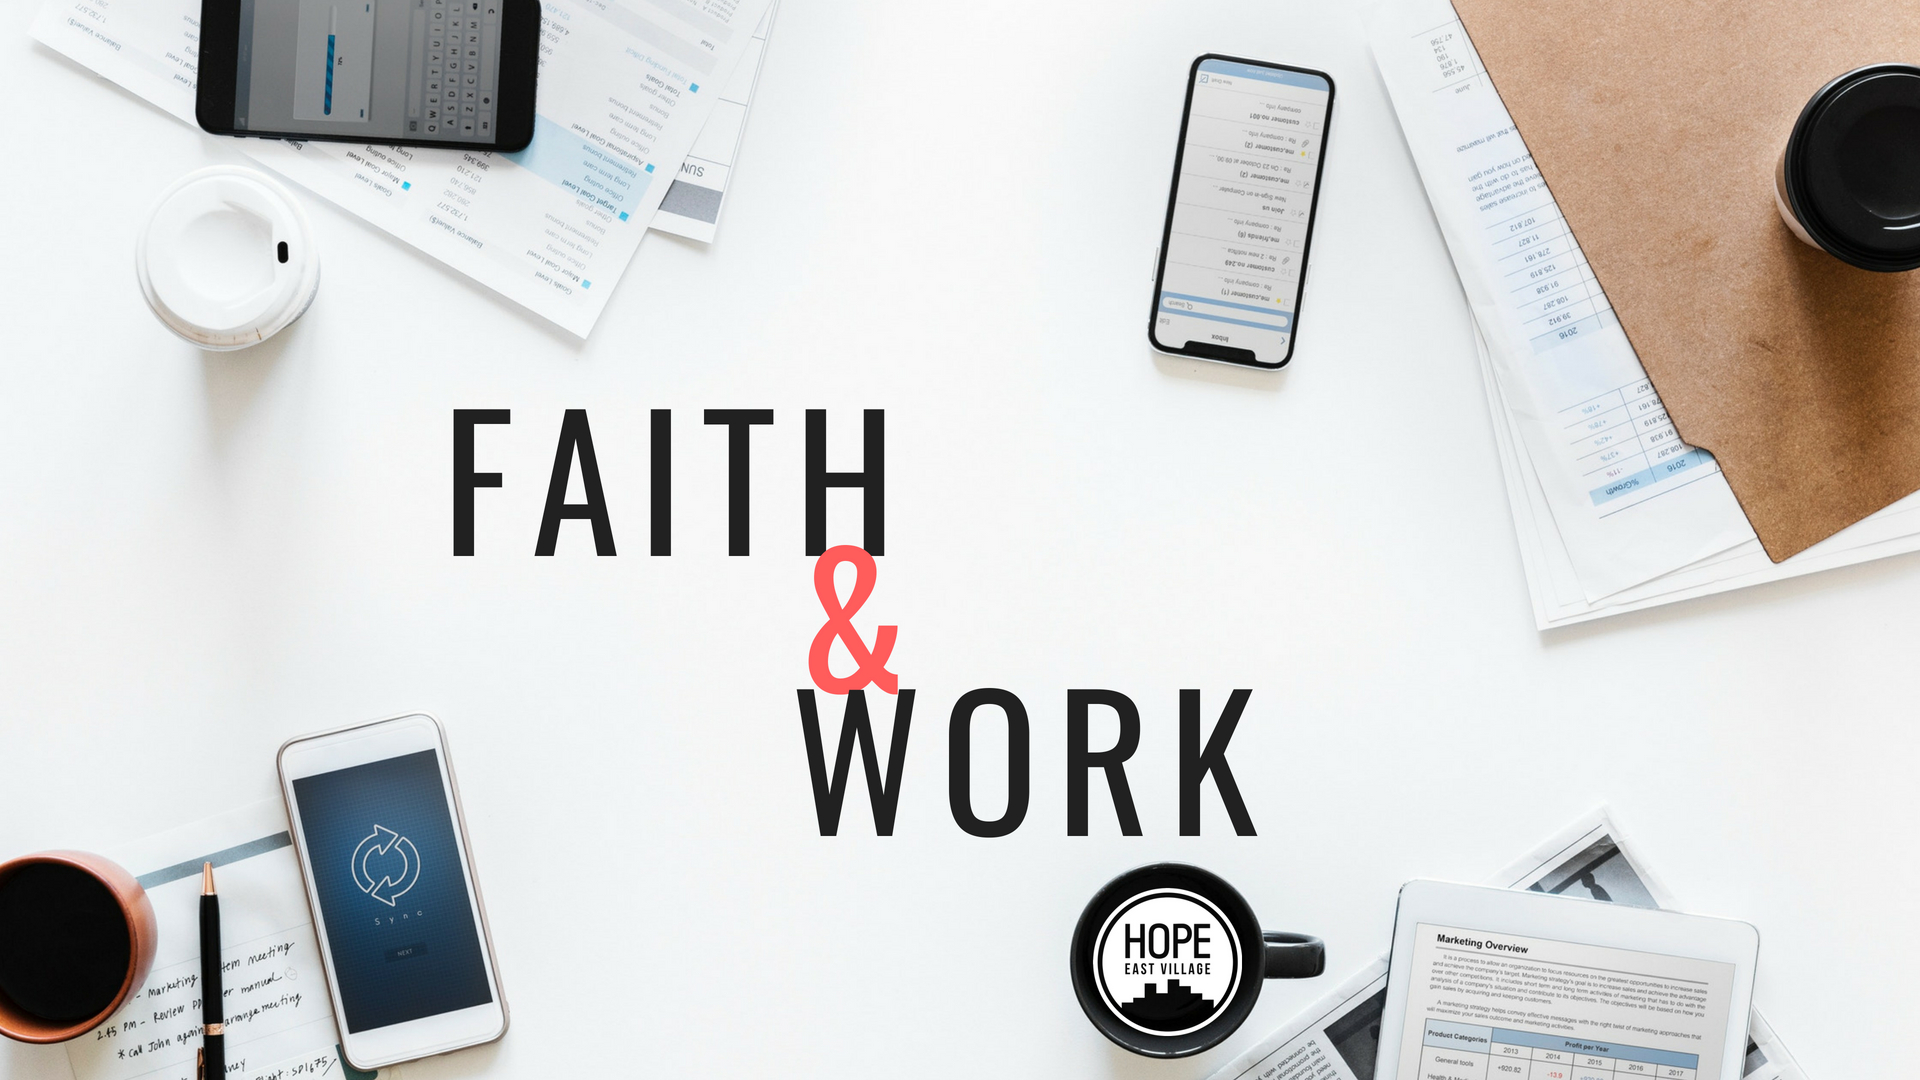 FAITH & WORK - Have you had questions about how your faith and the work you do can be integrated? Do you ever wonder if the work you do is important at all to the Kingdom of God? Listen to Alex Lee, Squarespace Software Engineer, talk about how the redemptive work of Christ extends to all areas of life, including the redemption of our work.